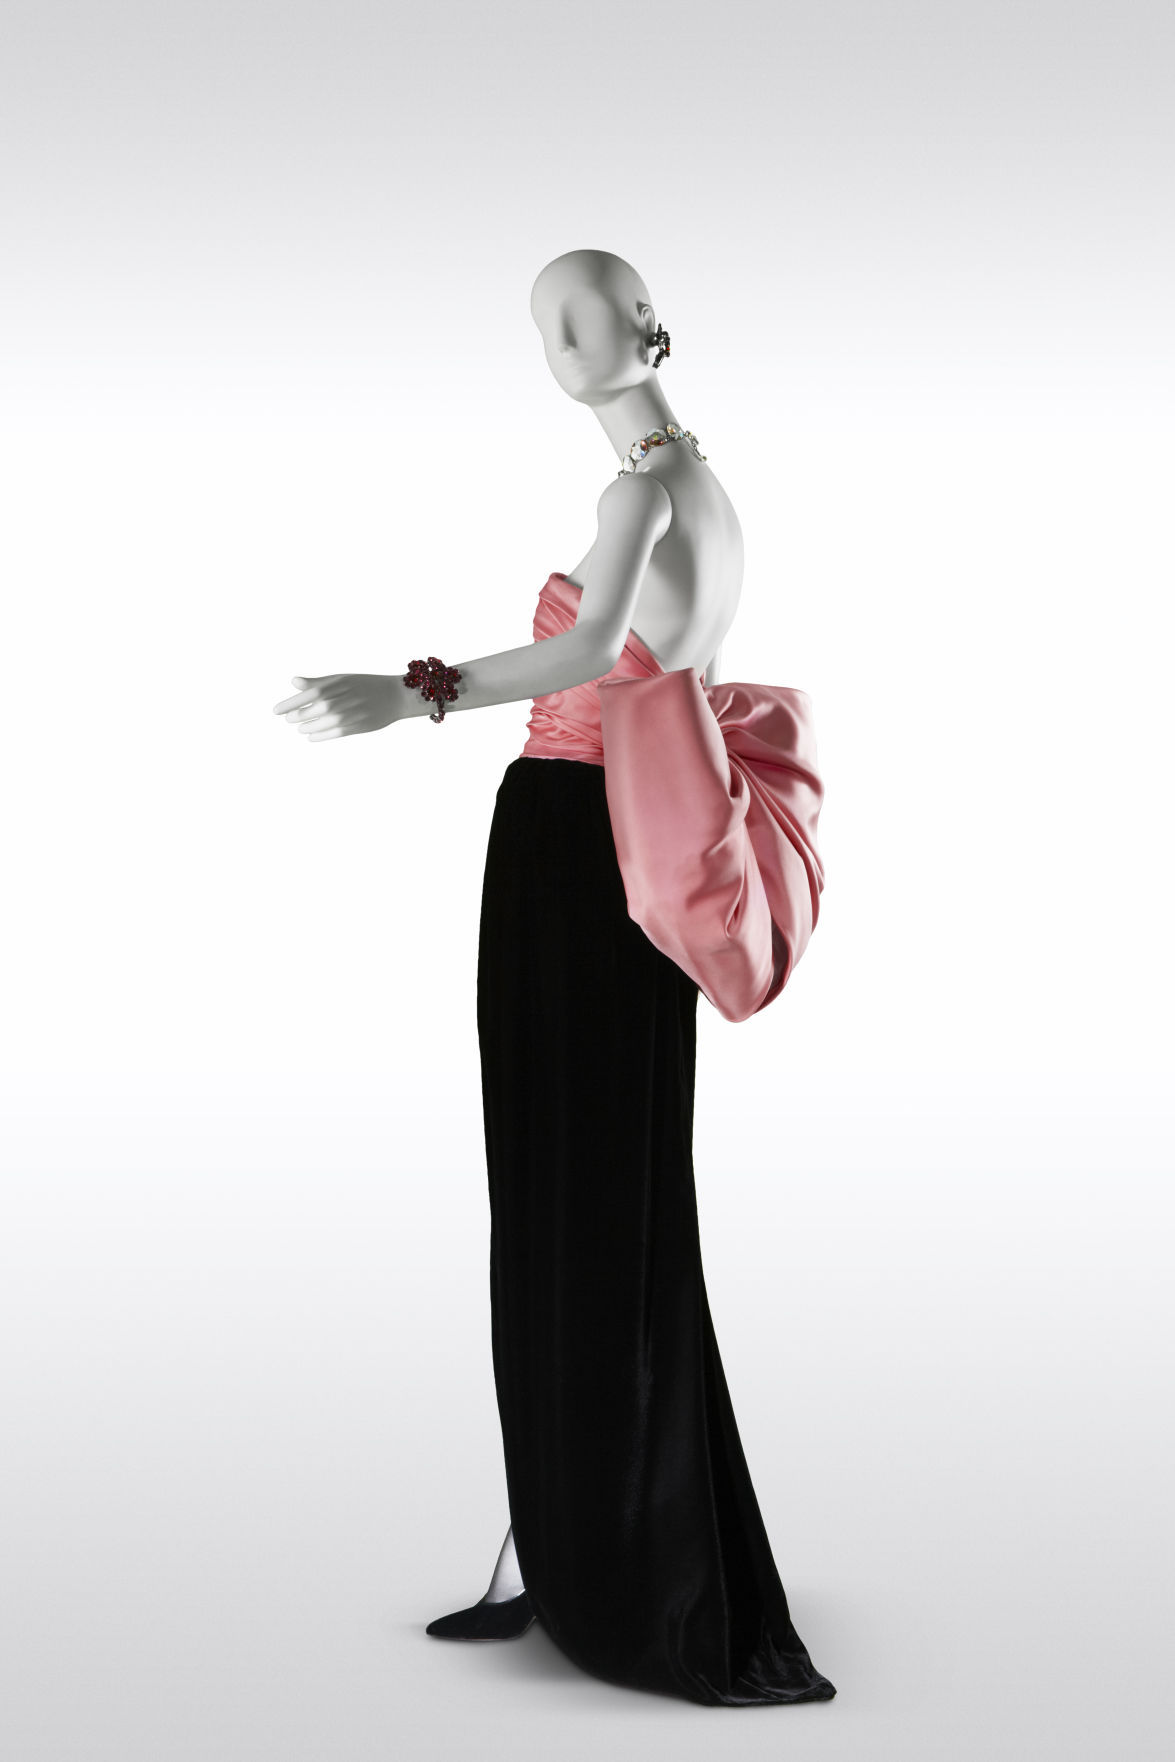 New \'Yves Saint Laurent\' exhibit at the VMFA puts ground-breaking ...